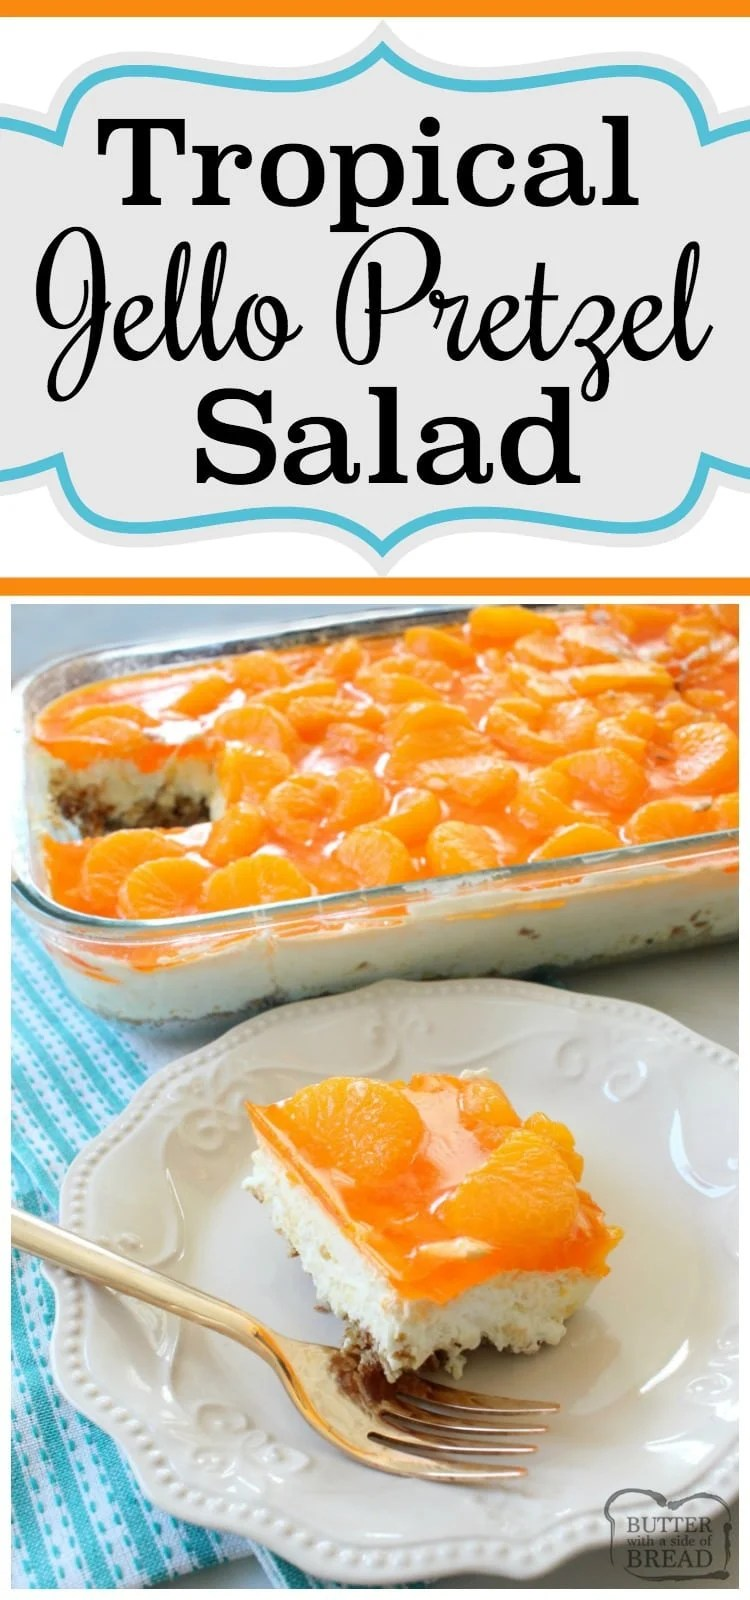 Tropical Jello Pretzel Salad is a combination of orange, pineapple and coconut flavors all in an easy-to-make sweet salad recipe! Easy #jello #salad recipe from Butter With A Side of Bread